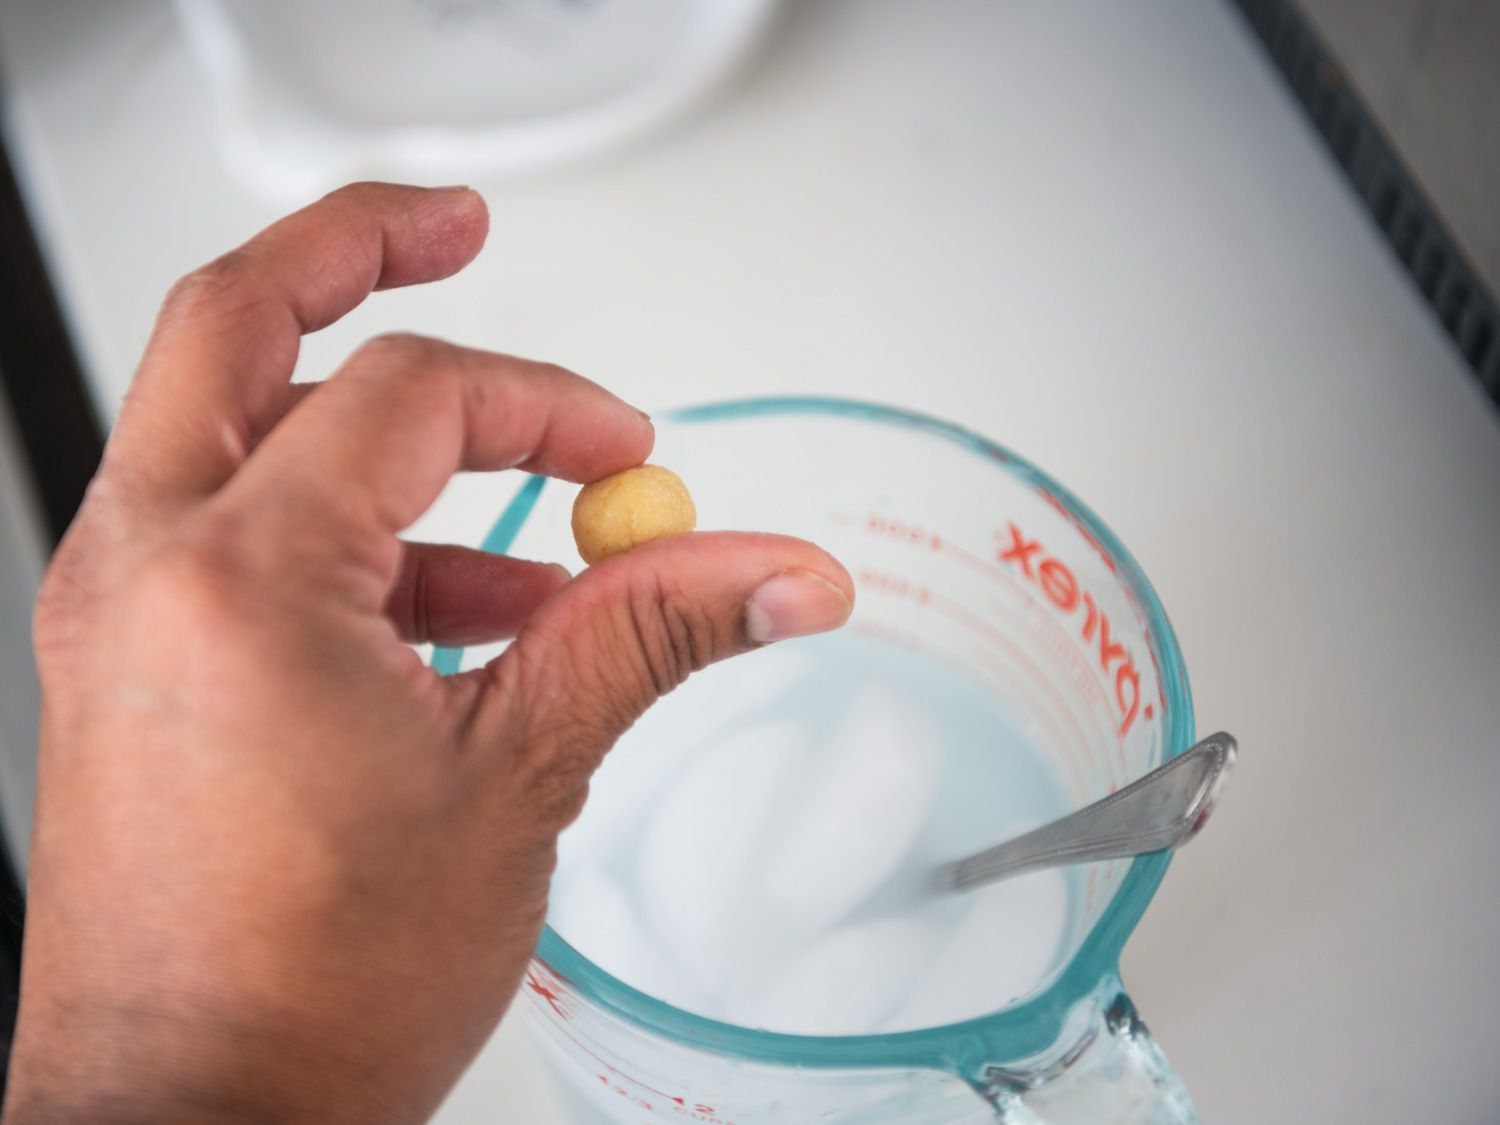 Small piece of milk cream dough formed into a ball between index finger and thumb, after undergoing ice bath test